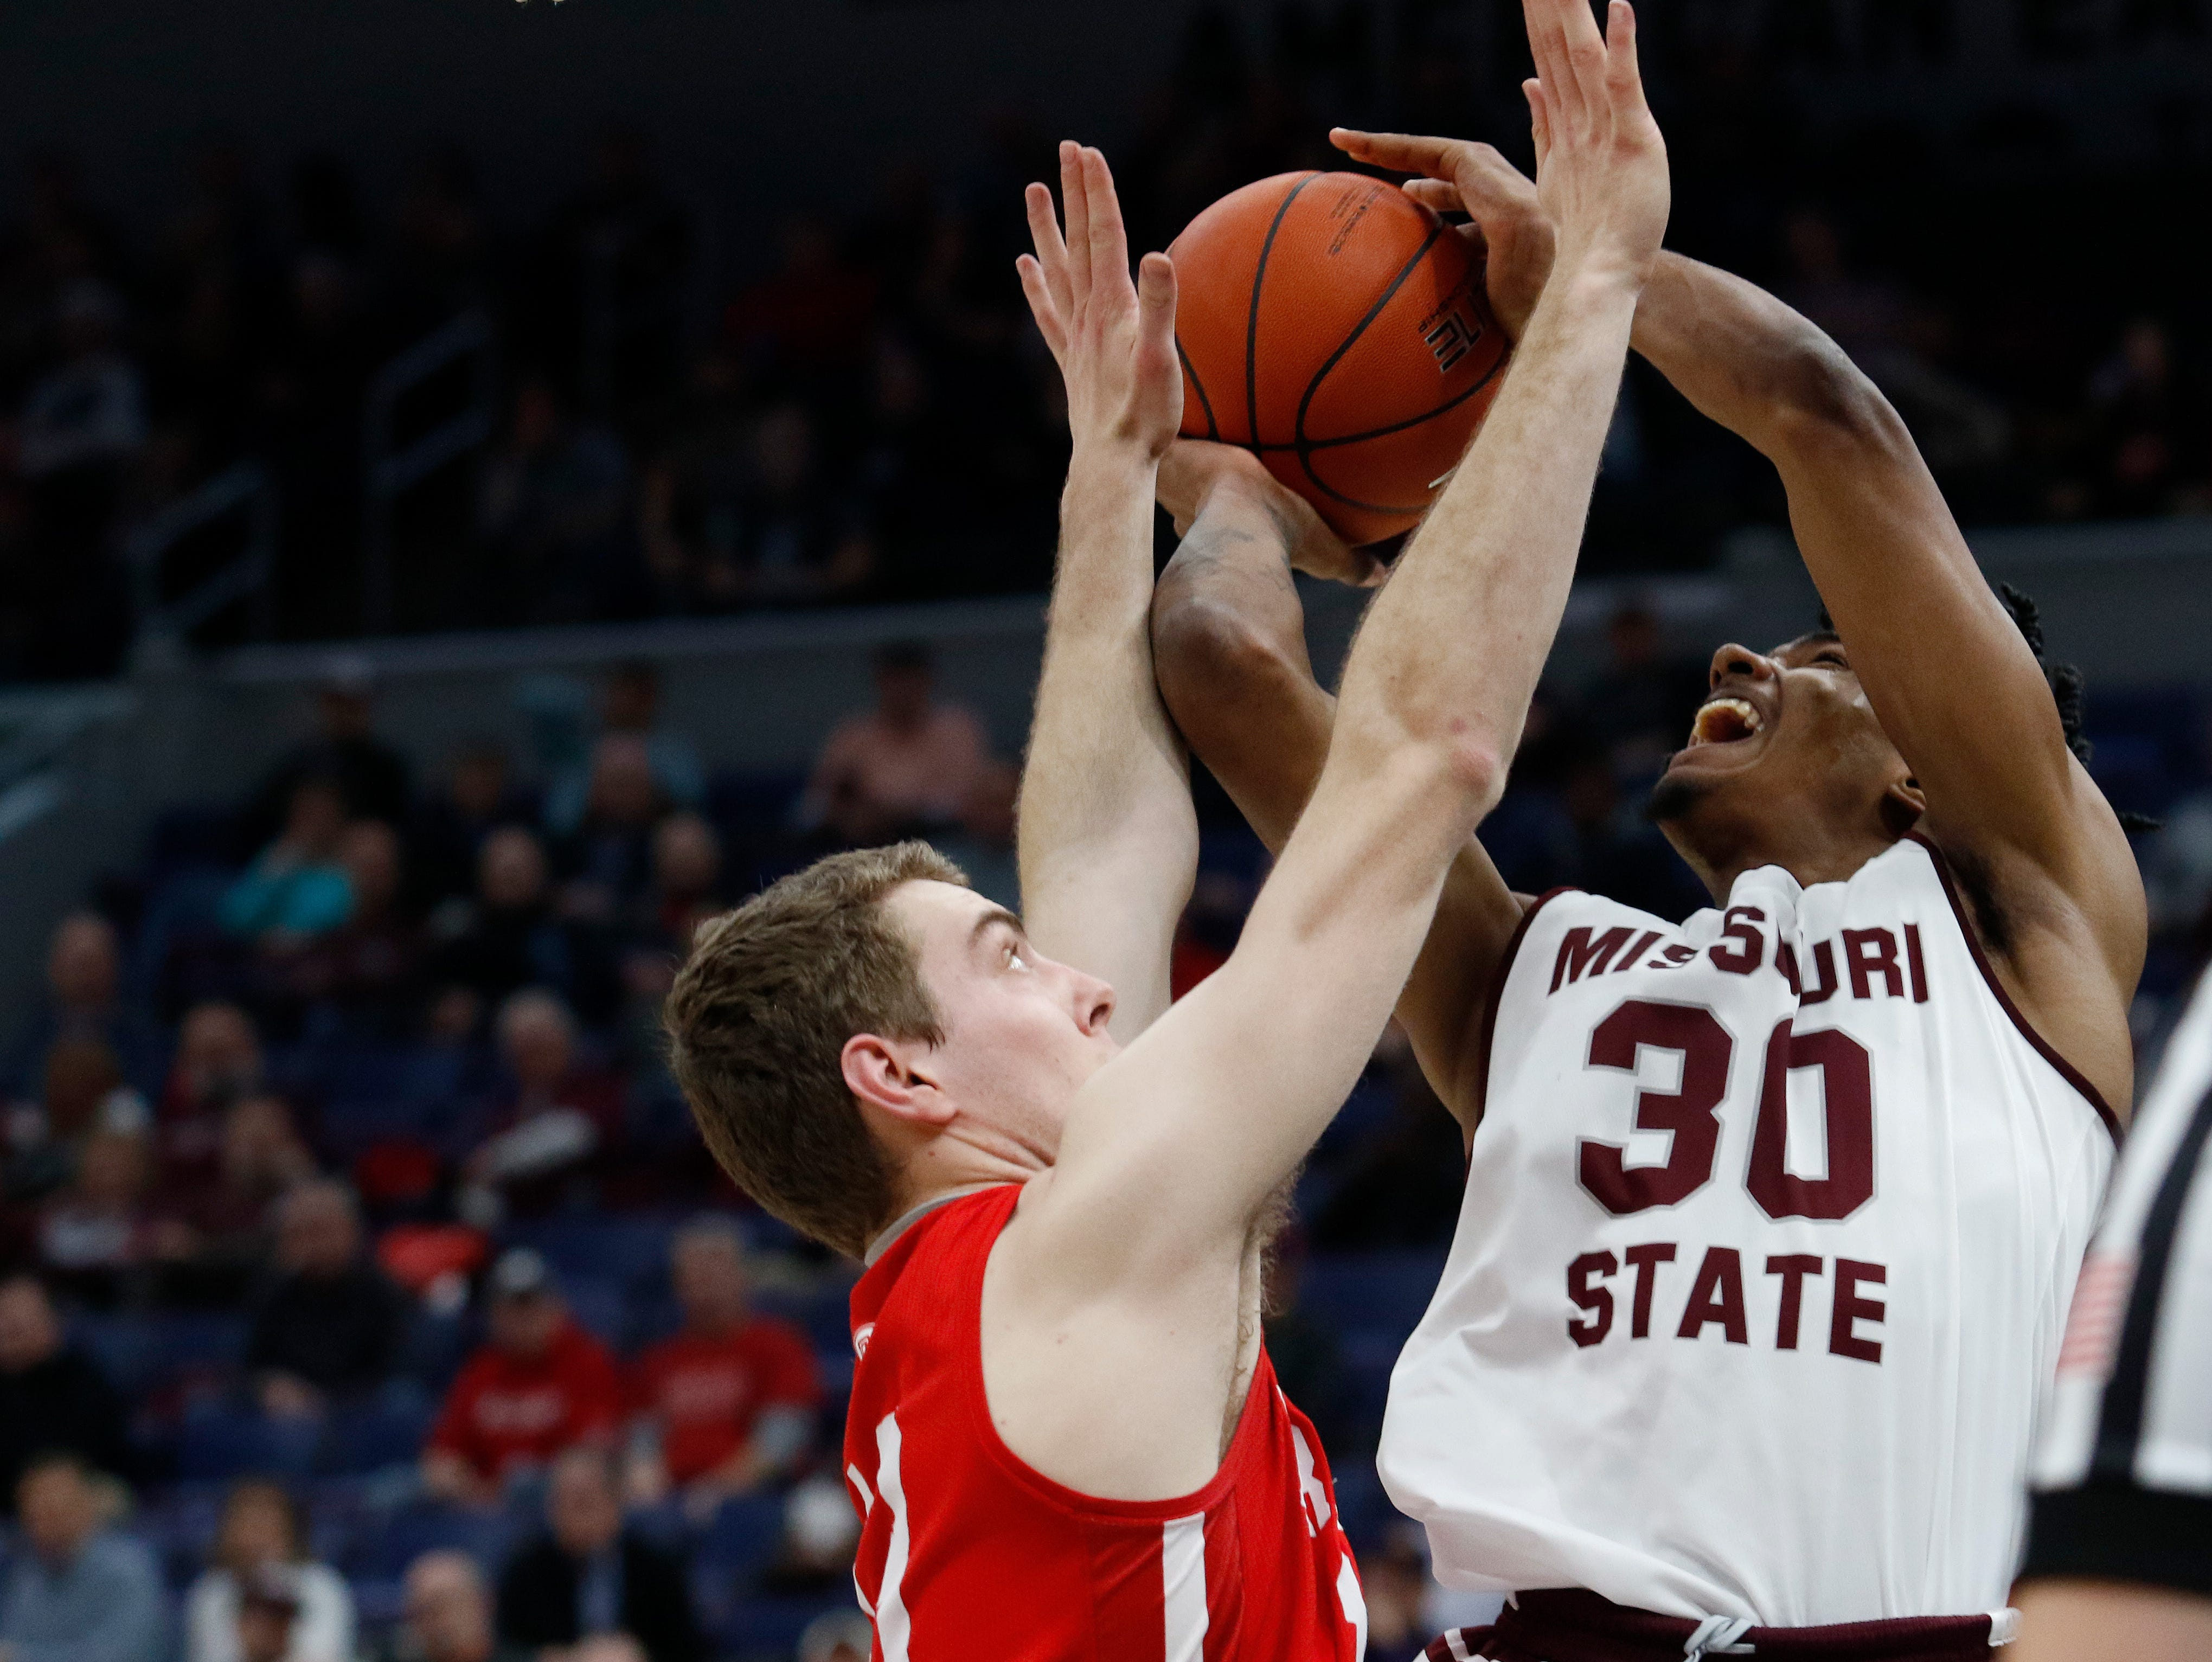 MVC Tournament action of Missouri State v. Bradley, Friday, March 8, 2019, at the Enterprise Center in St. Louis.